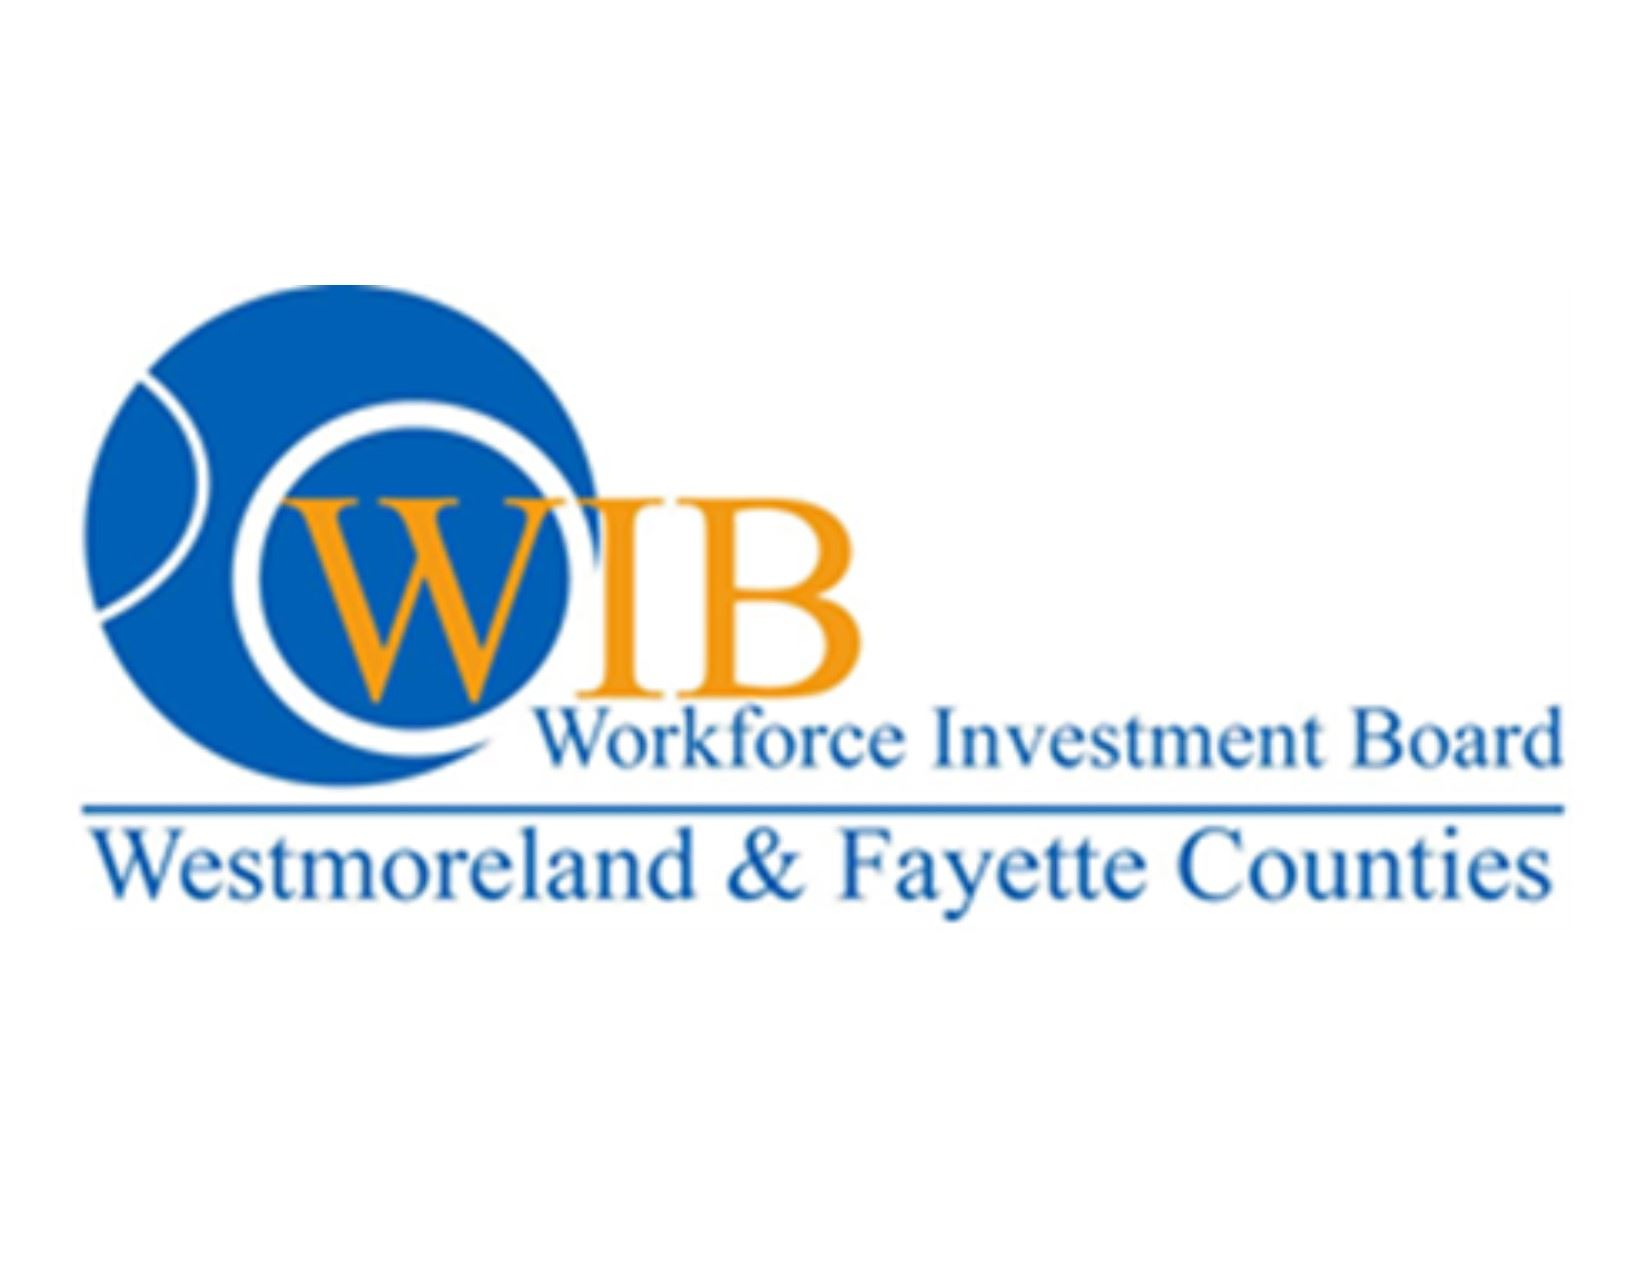 Workforce Investment Board of Westmoreland and Fayette Counties Logo